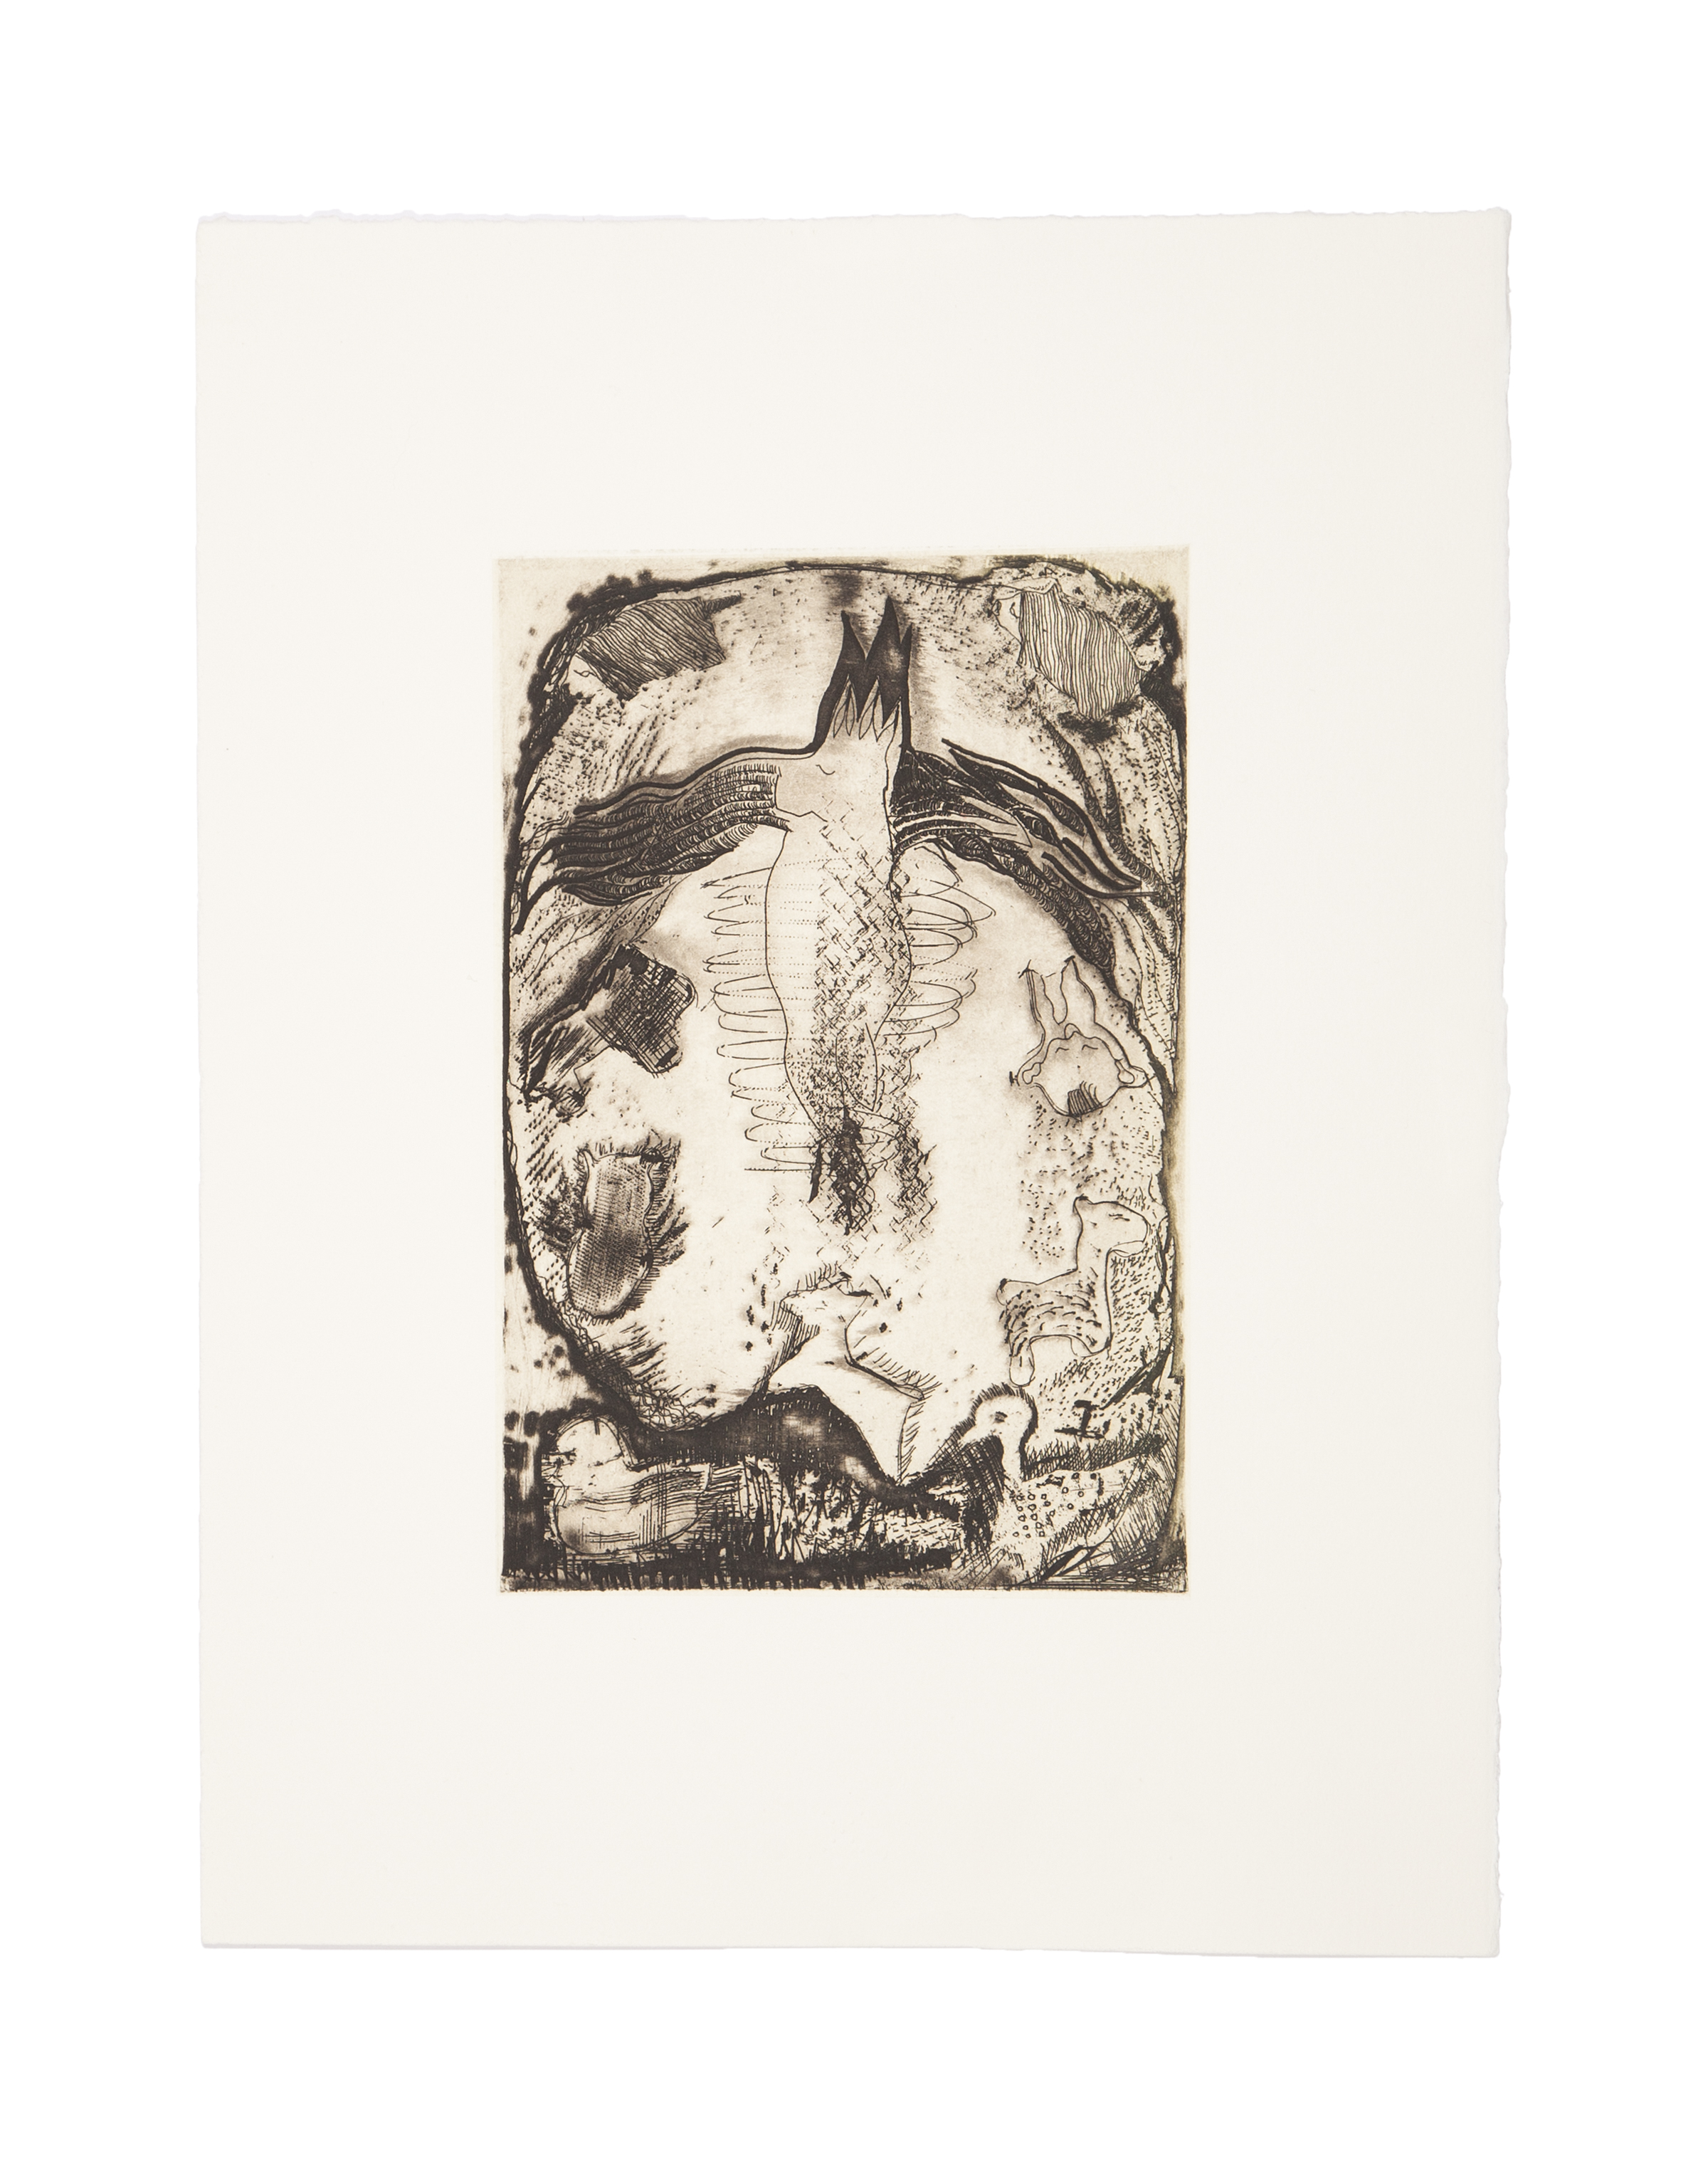 THE BABBU  Monoprint/etching  Image: 5.75 x 8.9 inches  Paper: 11.25 x 15 inches  Series of three  Printed by 10 Grand Press  © 2008 Carol Morrison